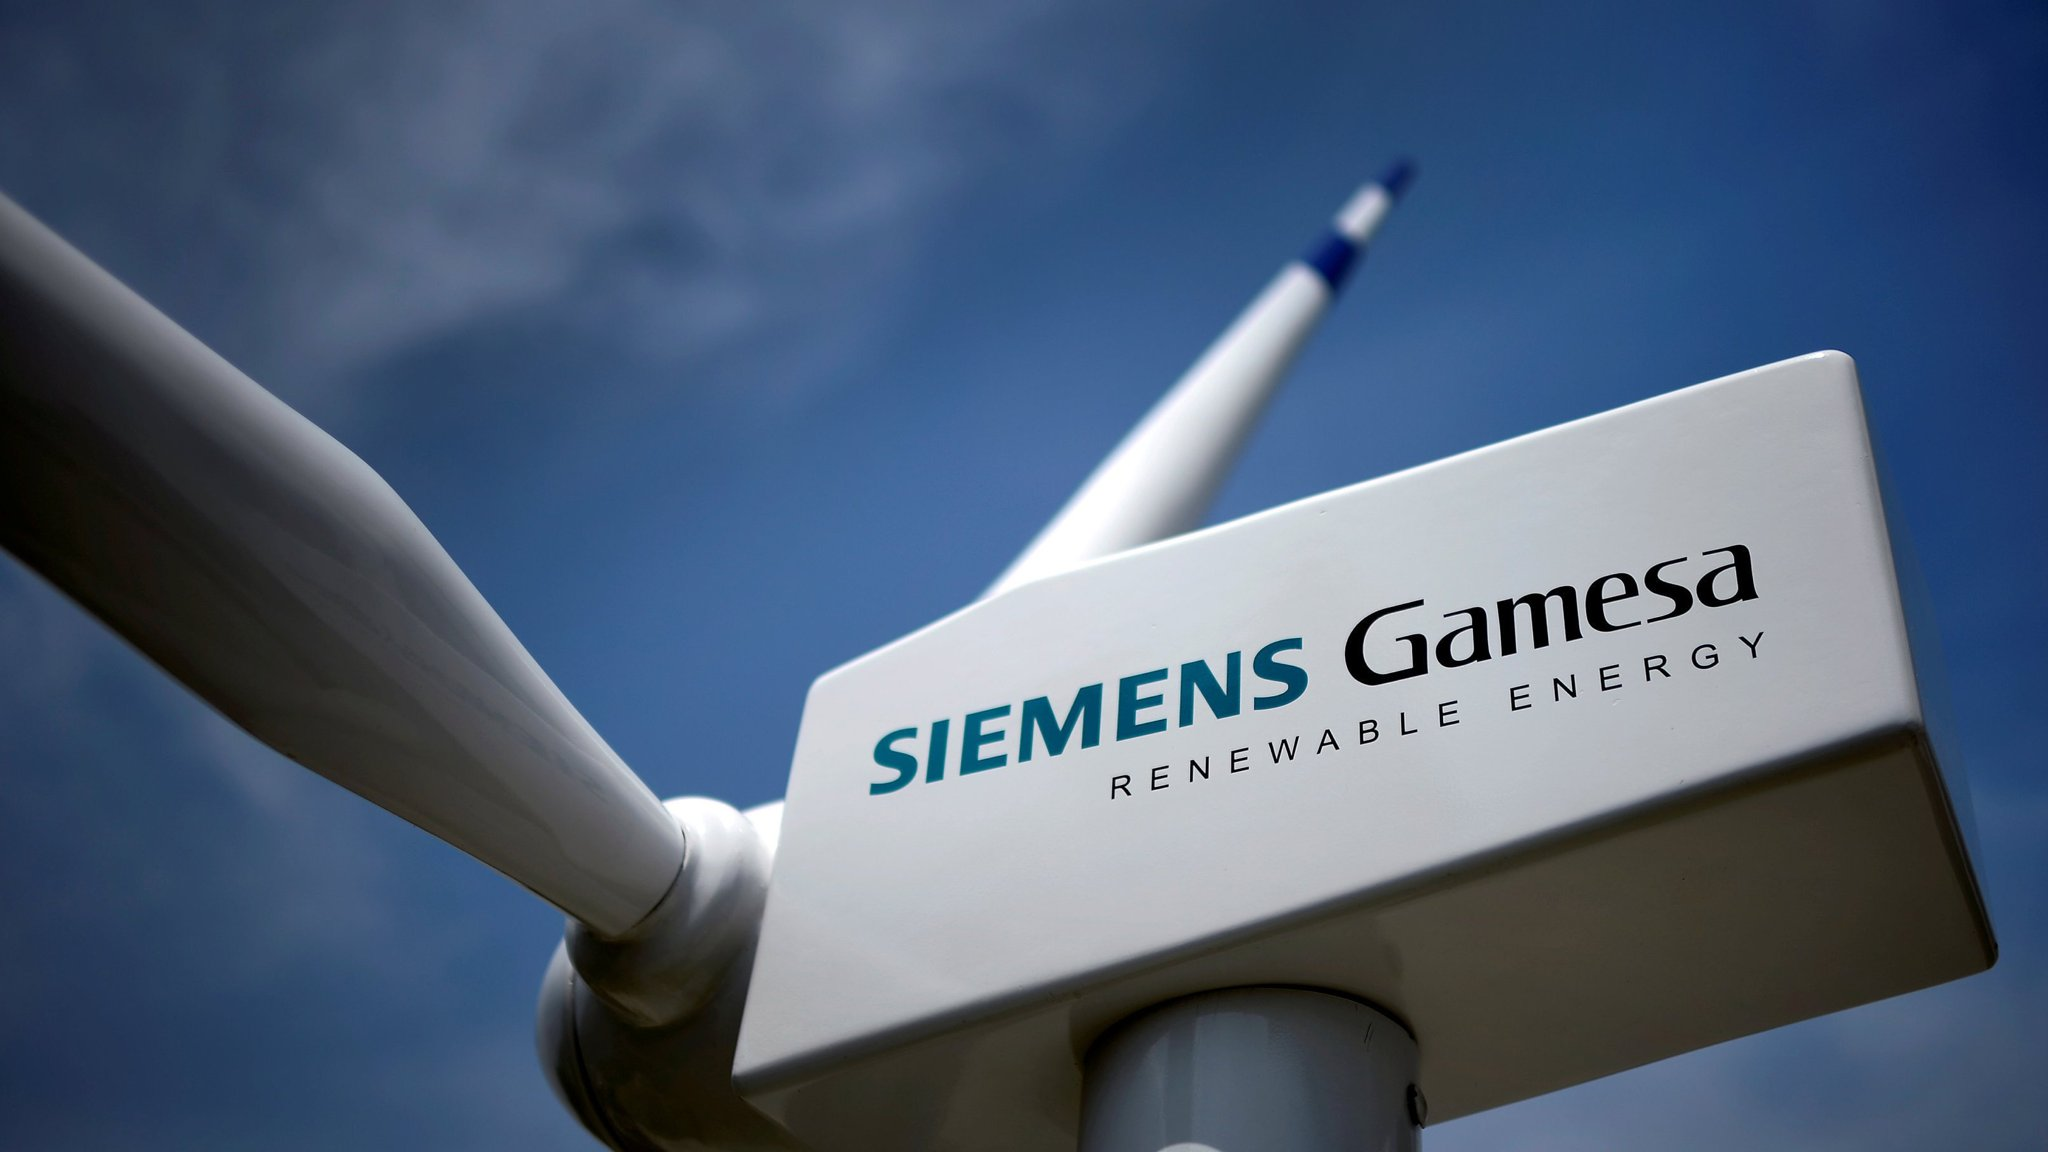 Siemens Gamesa named preferred supplier for largest U.S. offshore wind power project to date at 2.64 GW